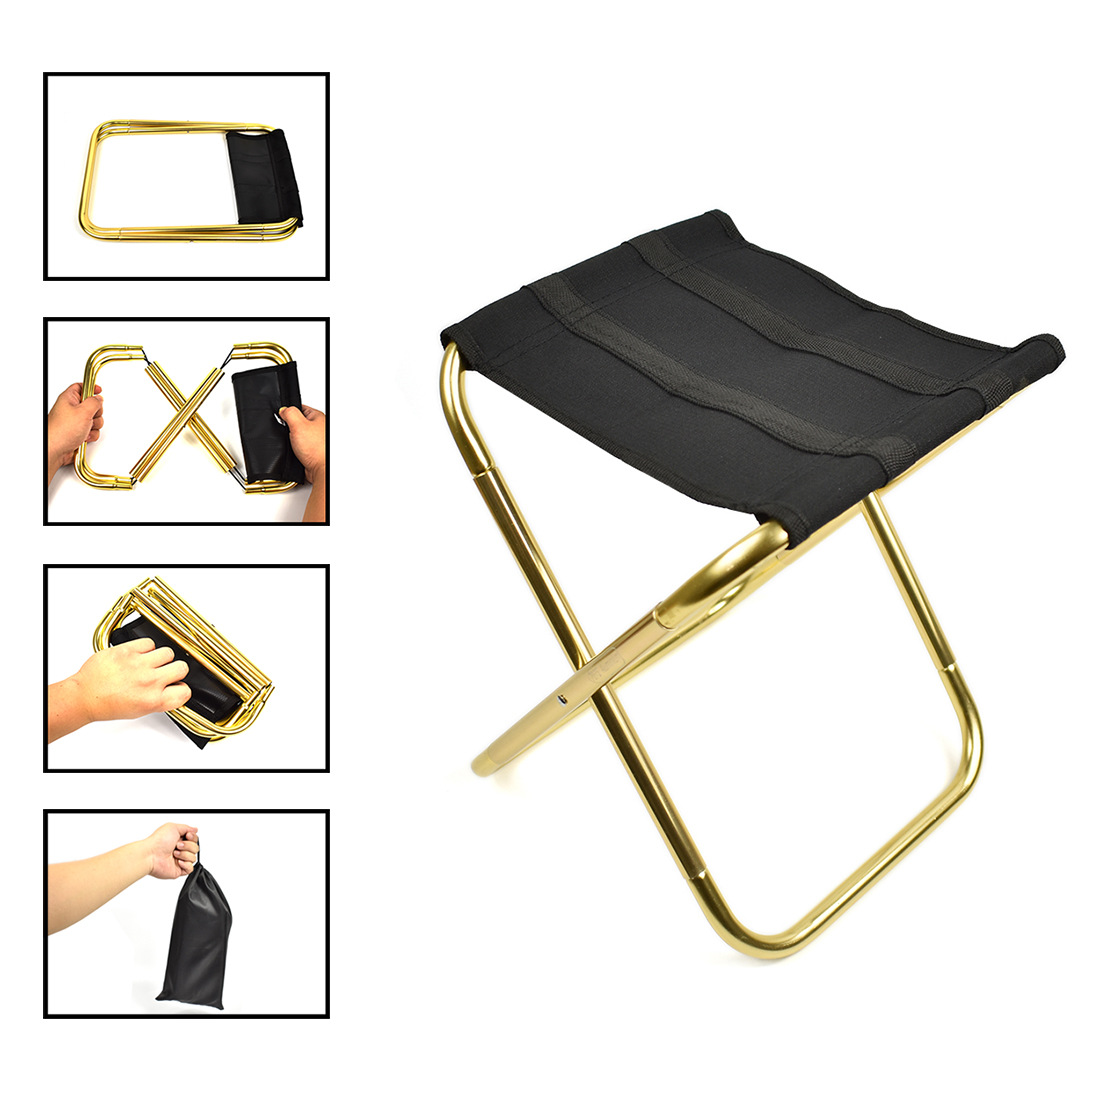 Camping Folding Tables And Chairs Camp Chair Outdoor Folding Chair 7075 Aluminium Alloy Fishing Chair Portable Barbecue Folding